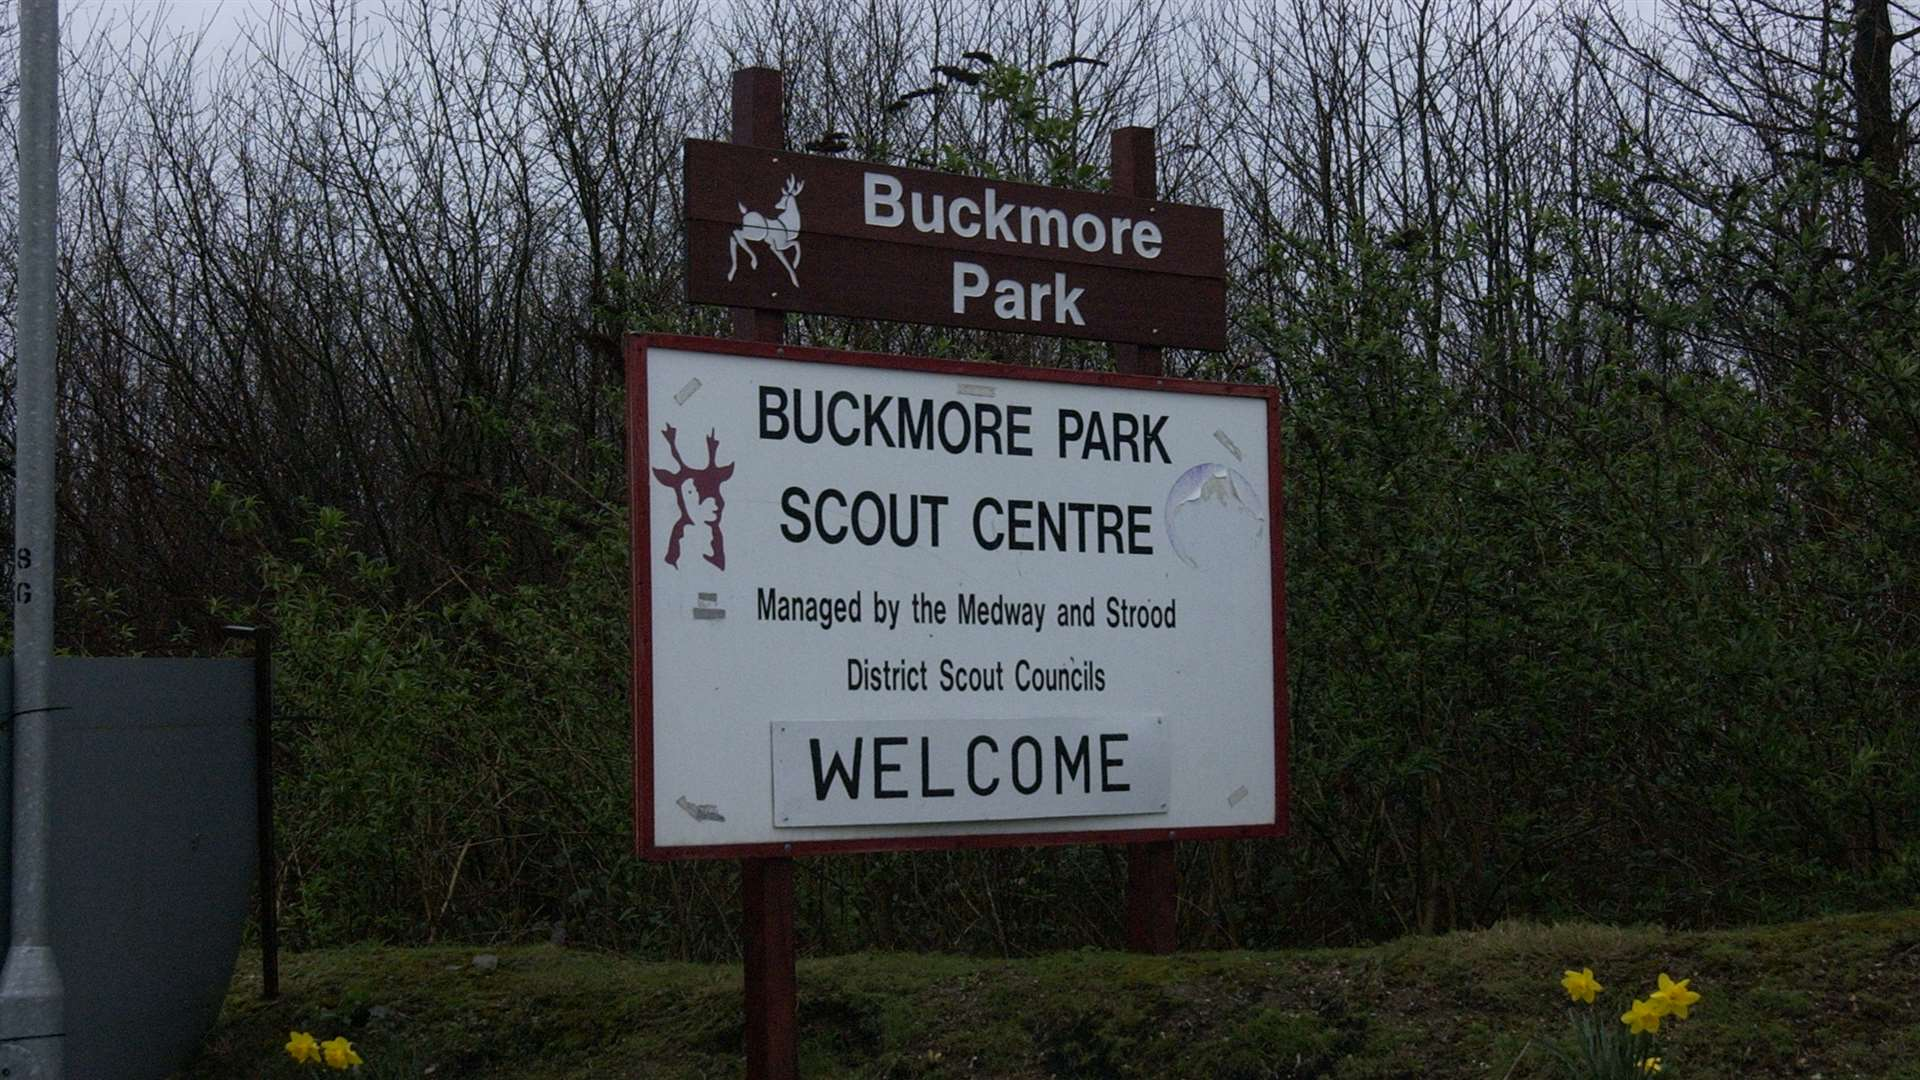 Buckmore Park before its closure as a Scouting centre